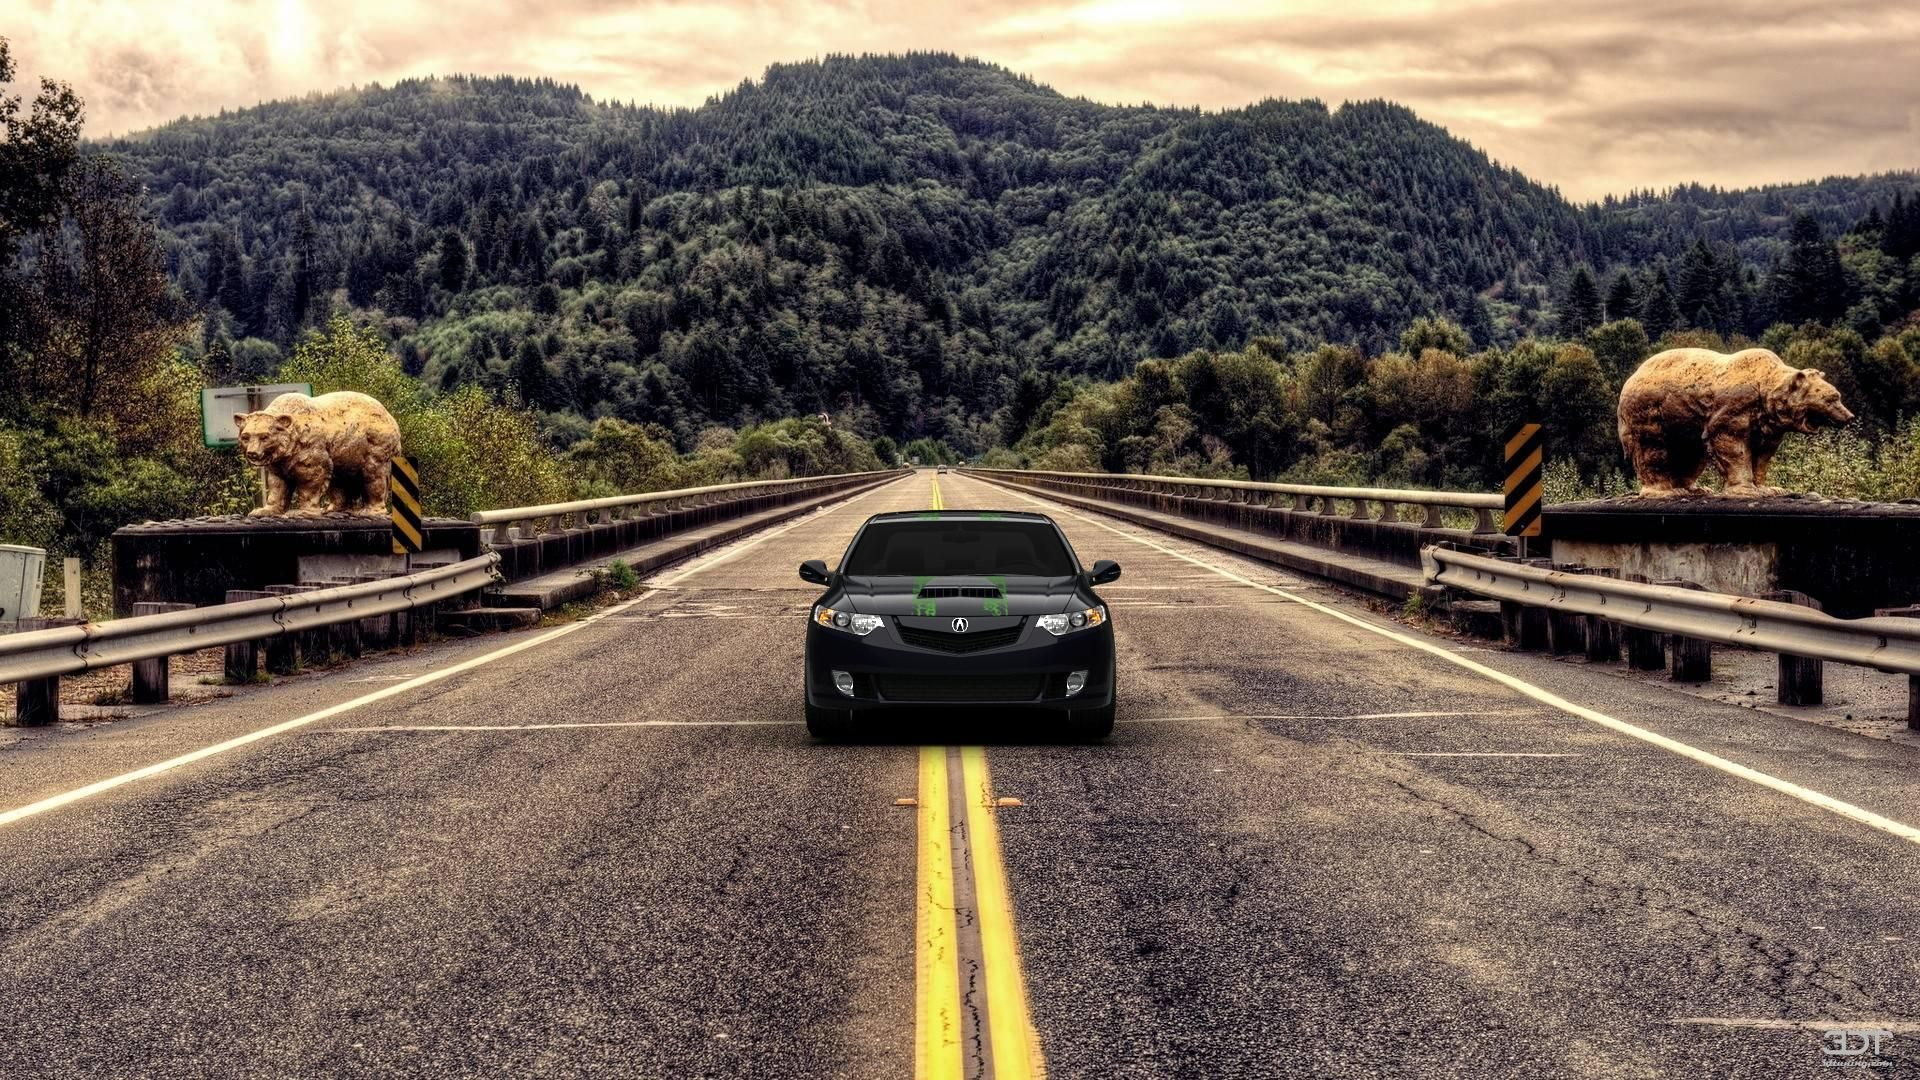 Checkout my tuning acura tsx 2009 at 3dtuning 3dtuning tuning